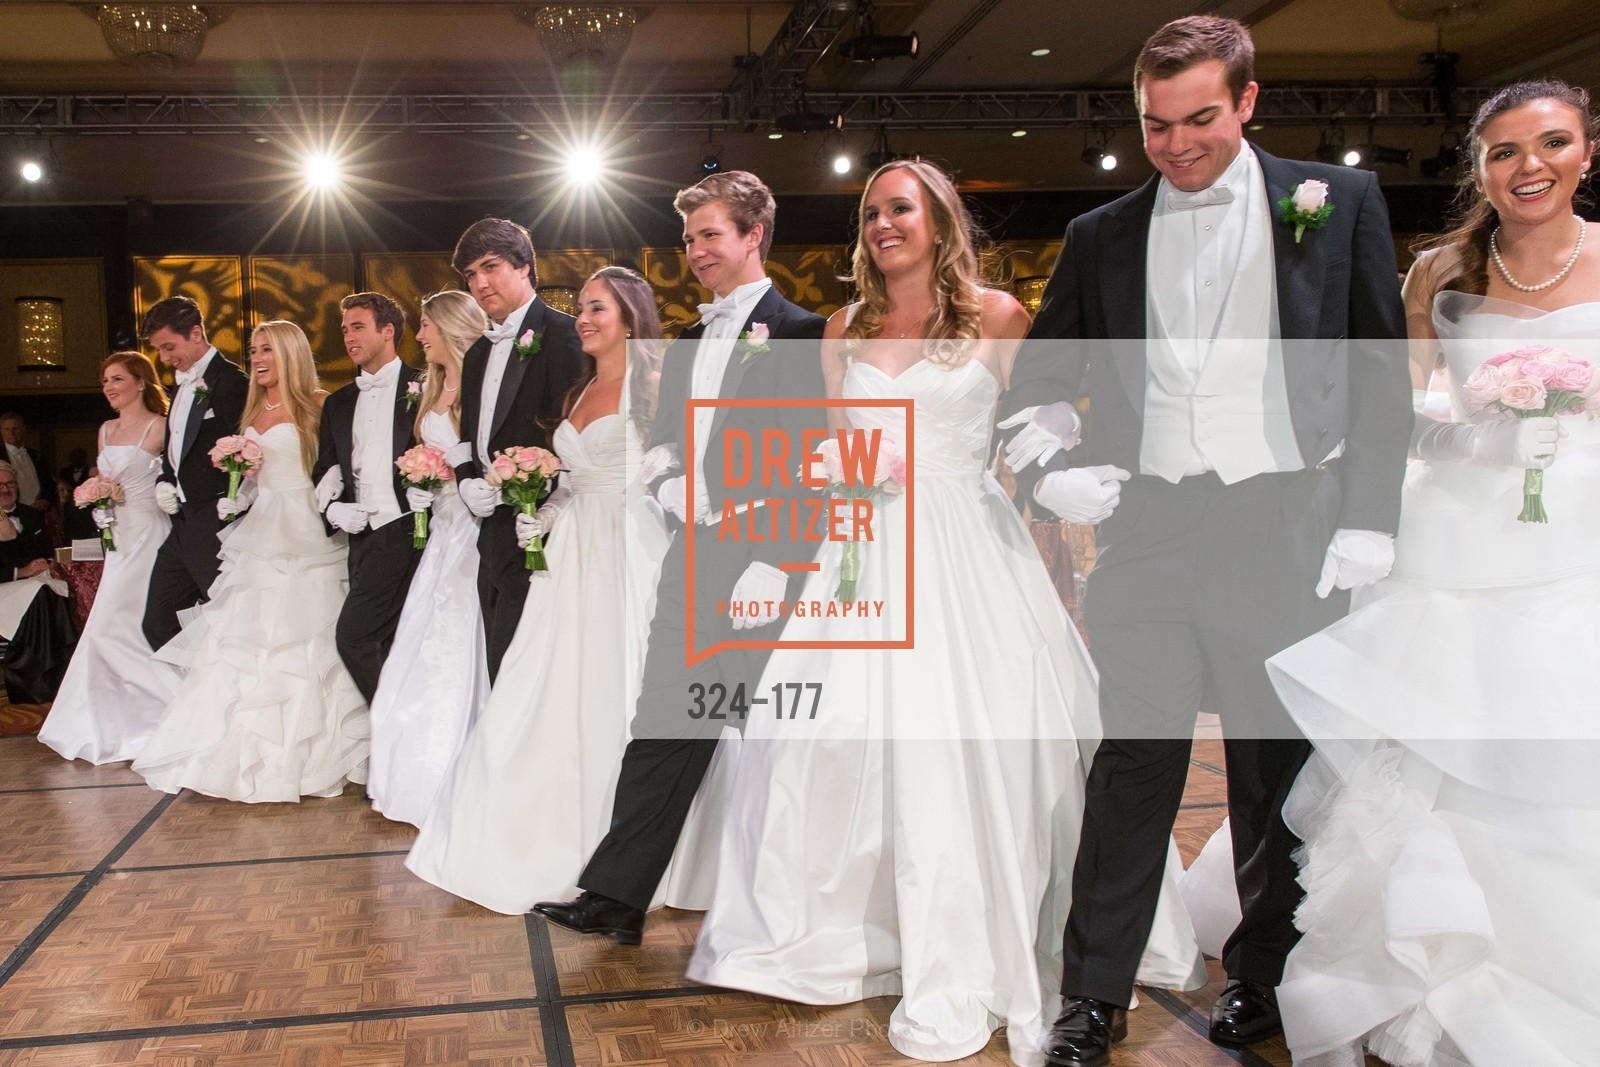 Curry Sullivan Fisher, William Behnke Jr., Mary Grinnell, Michael Grinnell II, Julia Marley Chenette, Michael Jeffrey King, Hailey Elizabeth Cusack, TJ Polite, Katarina Lina Churich, Peter James Campana, Jennifer Hannah Baylis, The 2015 San Francisco Debutante Ball, The Westin St. Francis San Francisco Union Square. 335 Powell St, June 20th, 2015,Drew Altizer, Drew Altizer Photography, full-service agency, private events, San Francisco photographer, photographer california